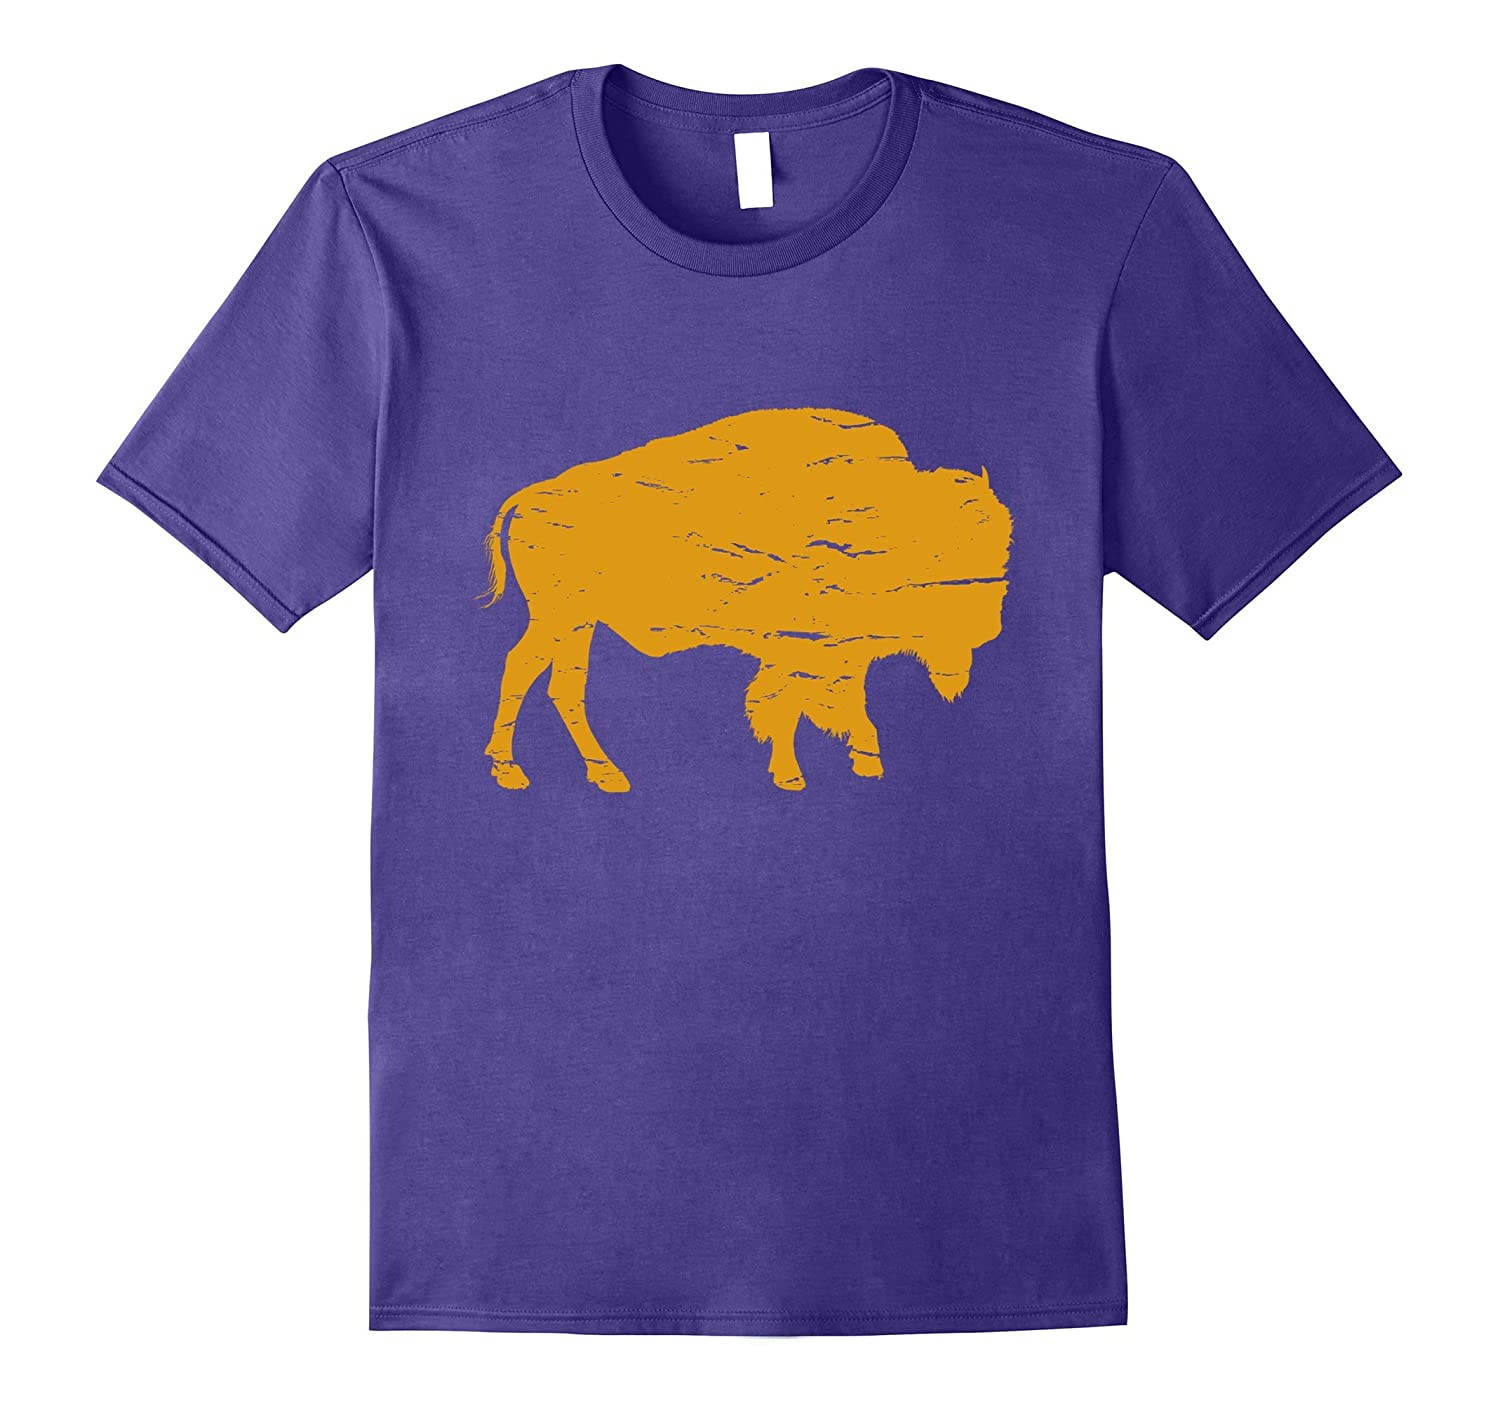 Buffalo Bison Tatanka T-Shirt in Orange-Vaci